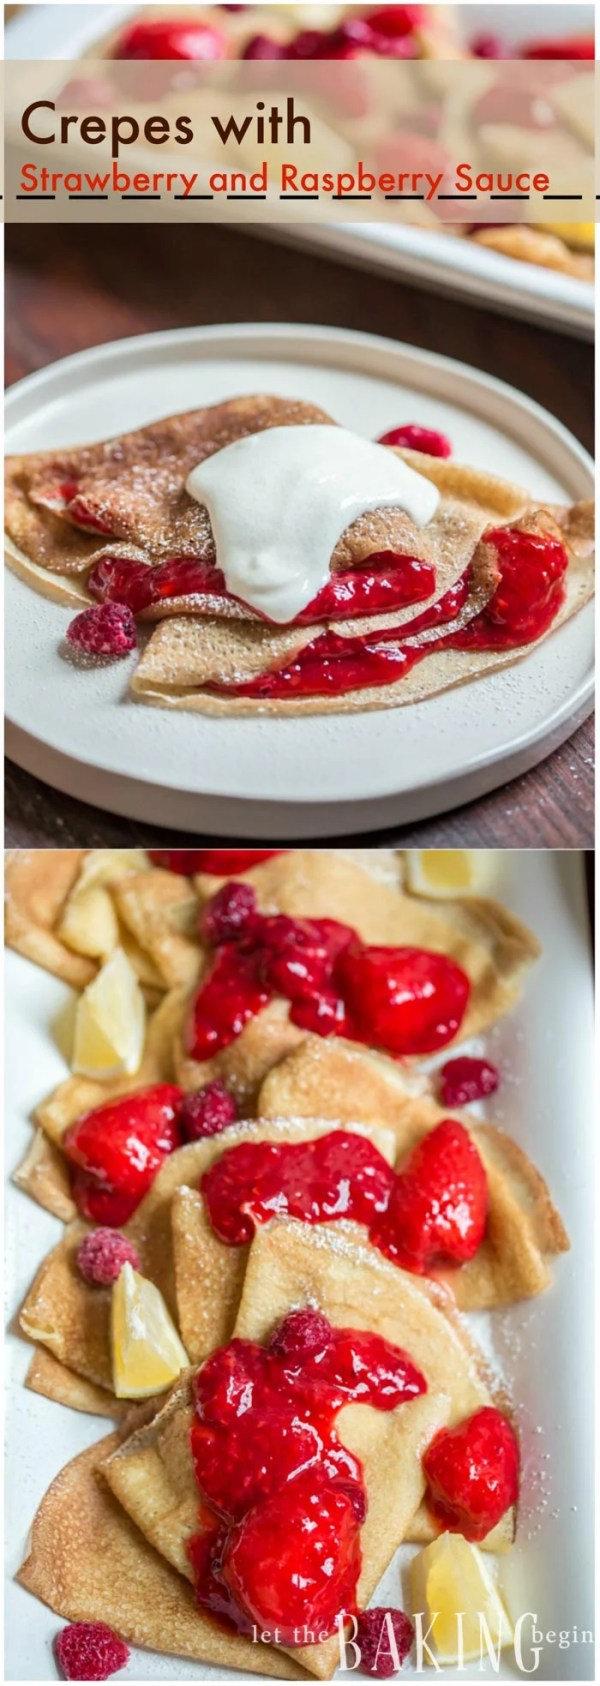 Crepes with Strawberry and Raspberry Sauce | Let the Baking Begin!